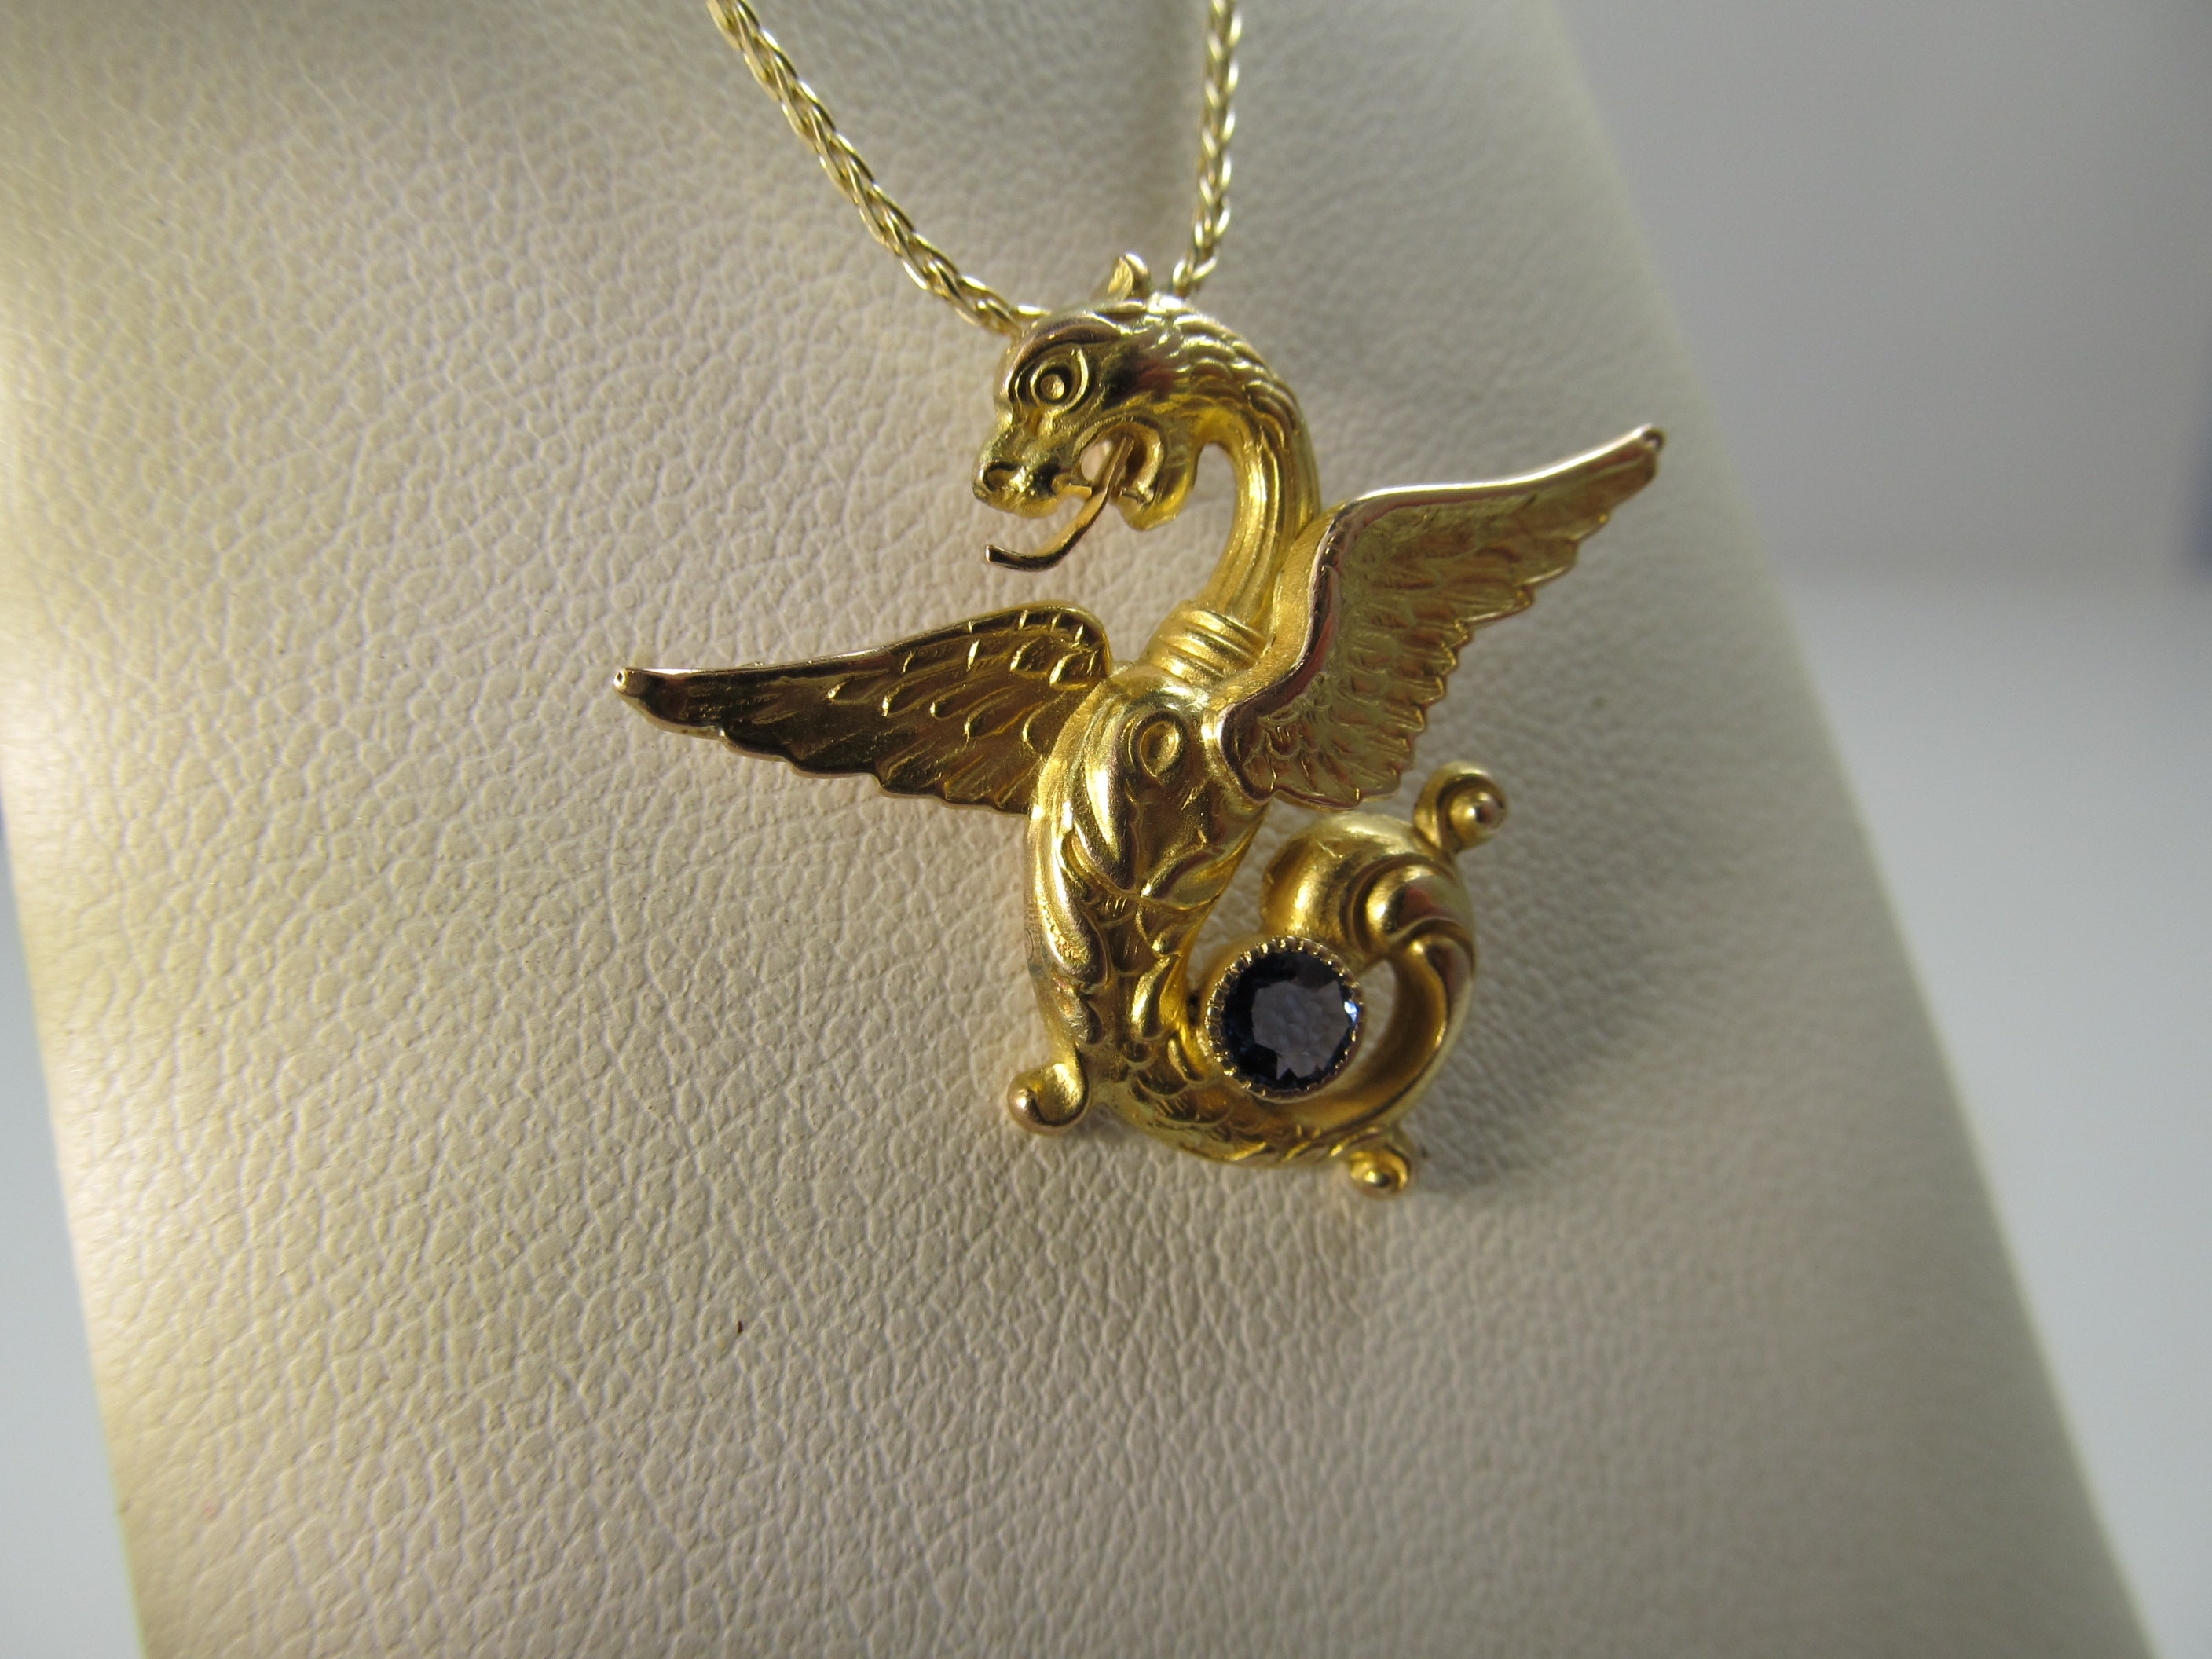 Antique 14k yellow gold griffin necklace with a sapphire, circa 1900